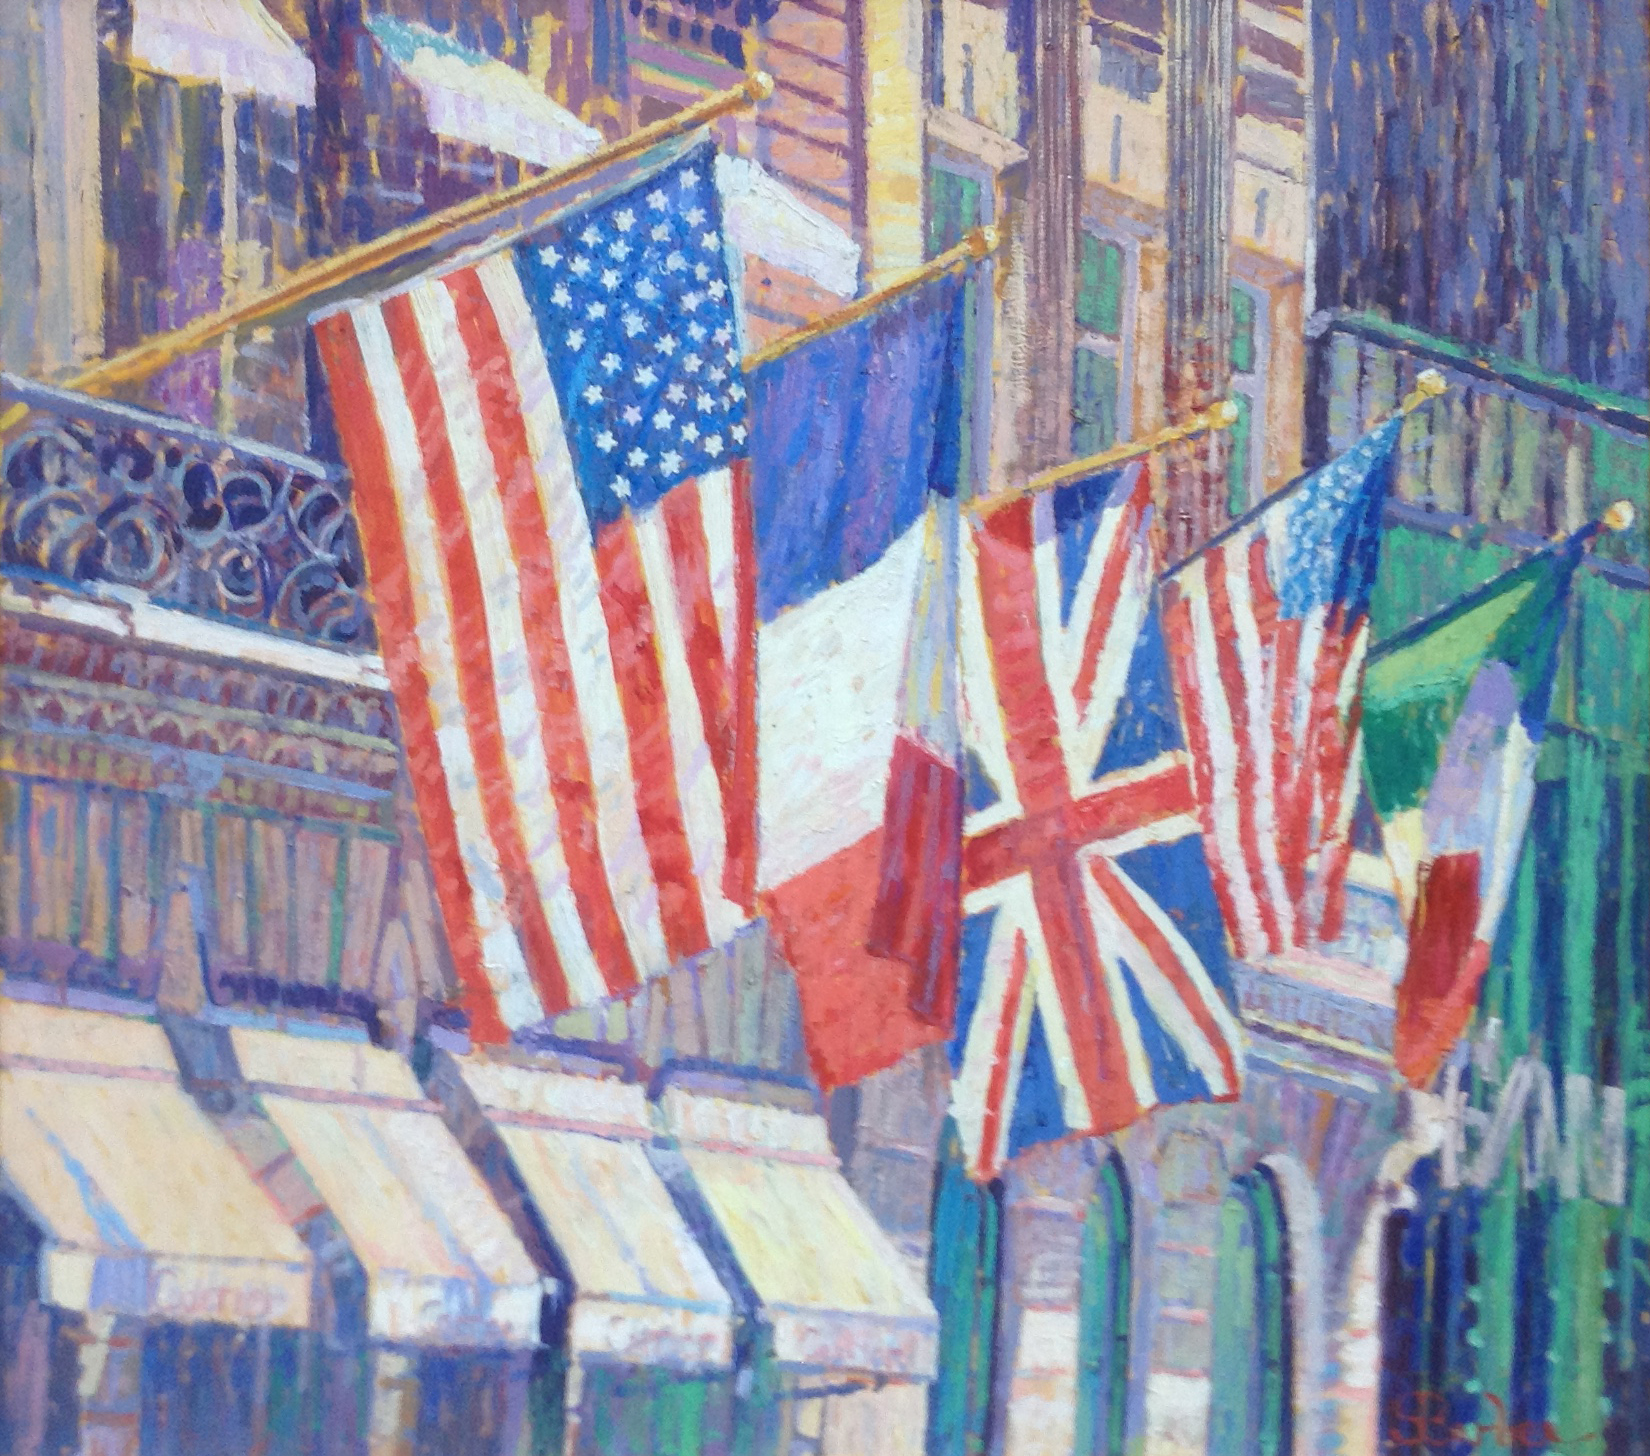 Fifth Ave Flags |  36 x 40  |   Oil on canvas